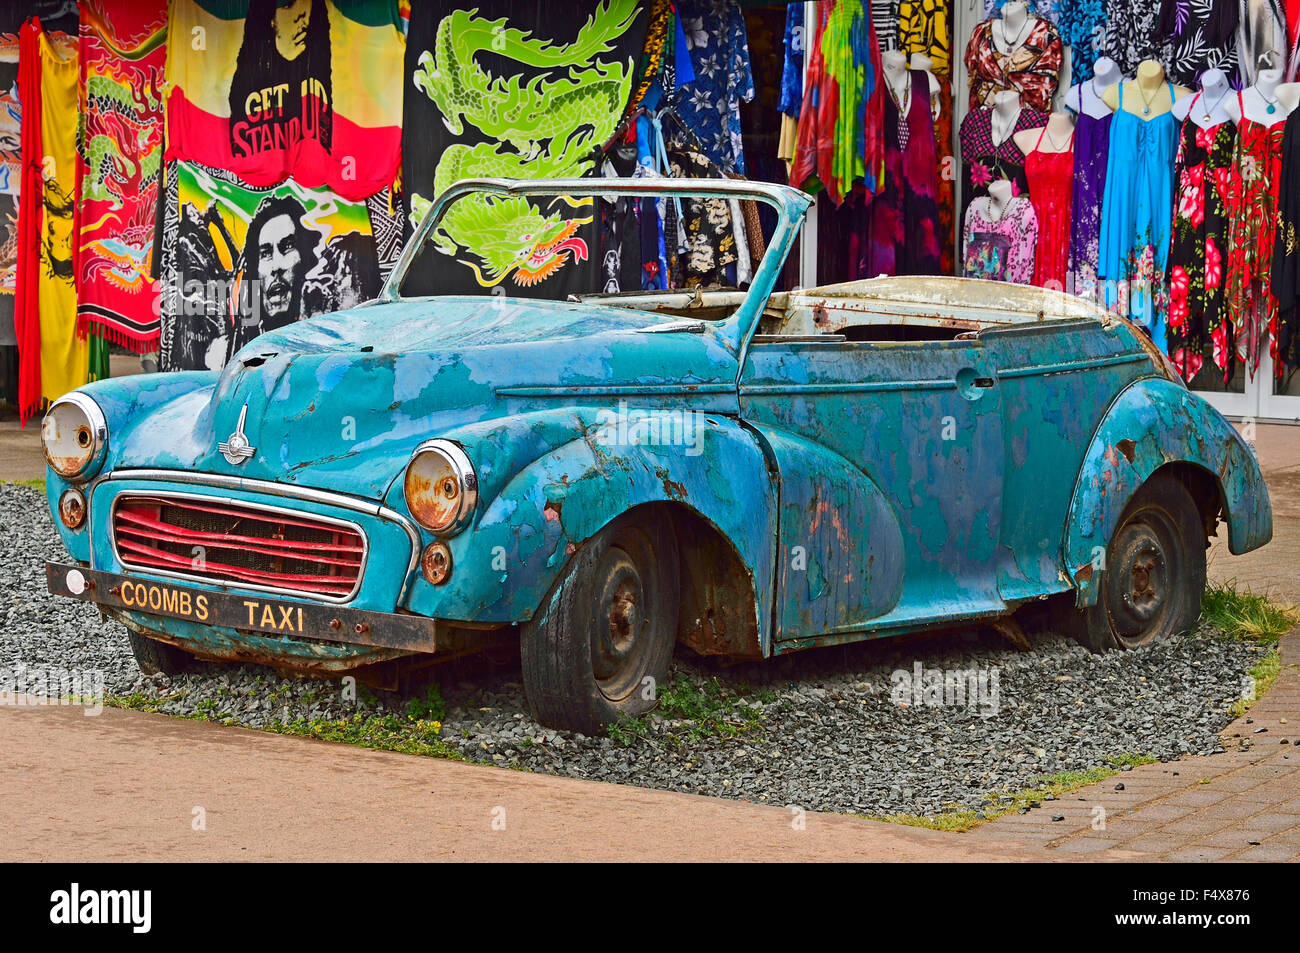 Stripped Car Stock Photos & Stripped Car Stock Images - Alamy